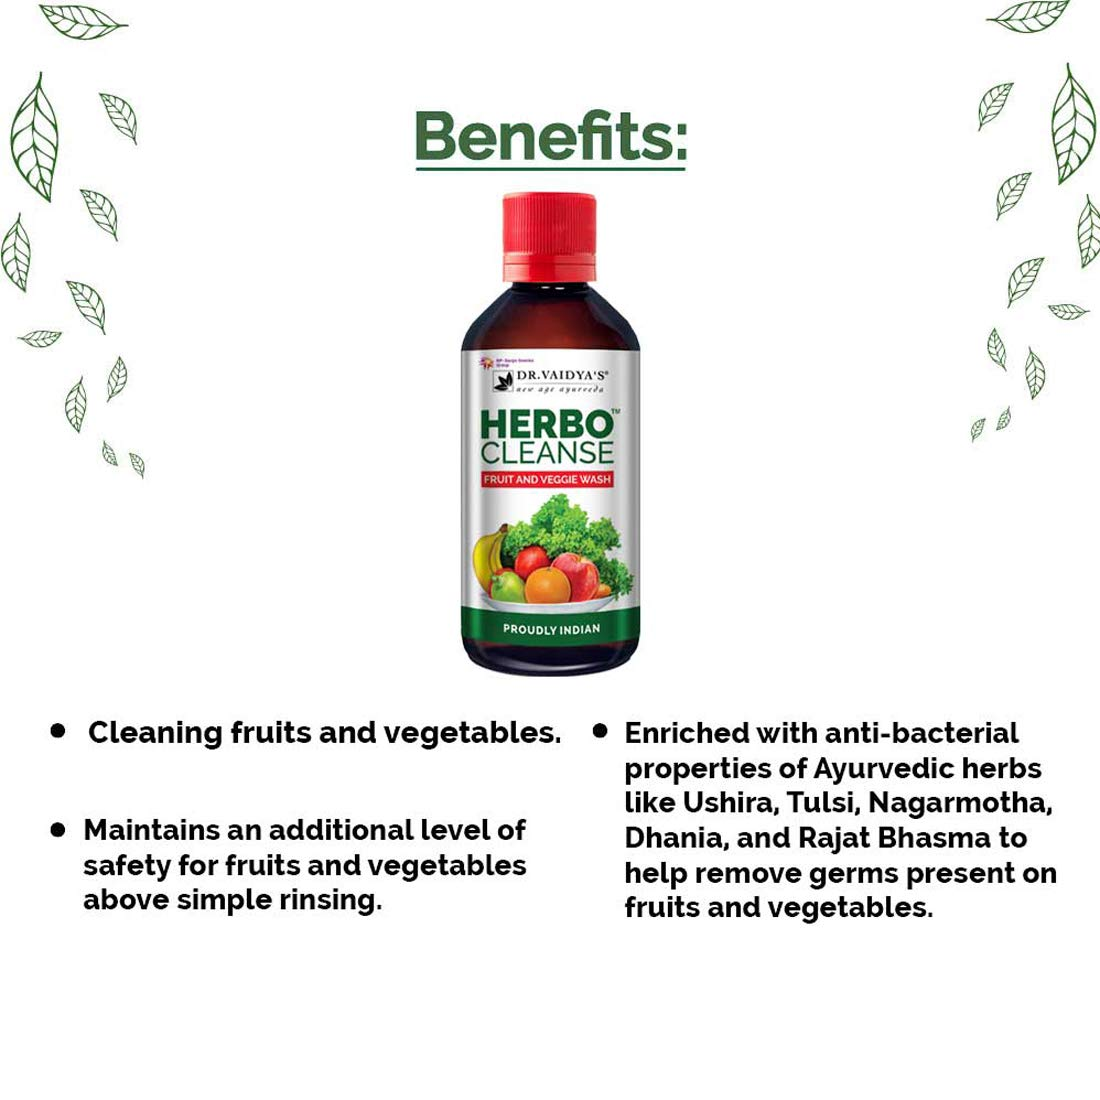 Herbocleanse: Fruit and Veggie Wash | MRP: Rs. 150